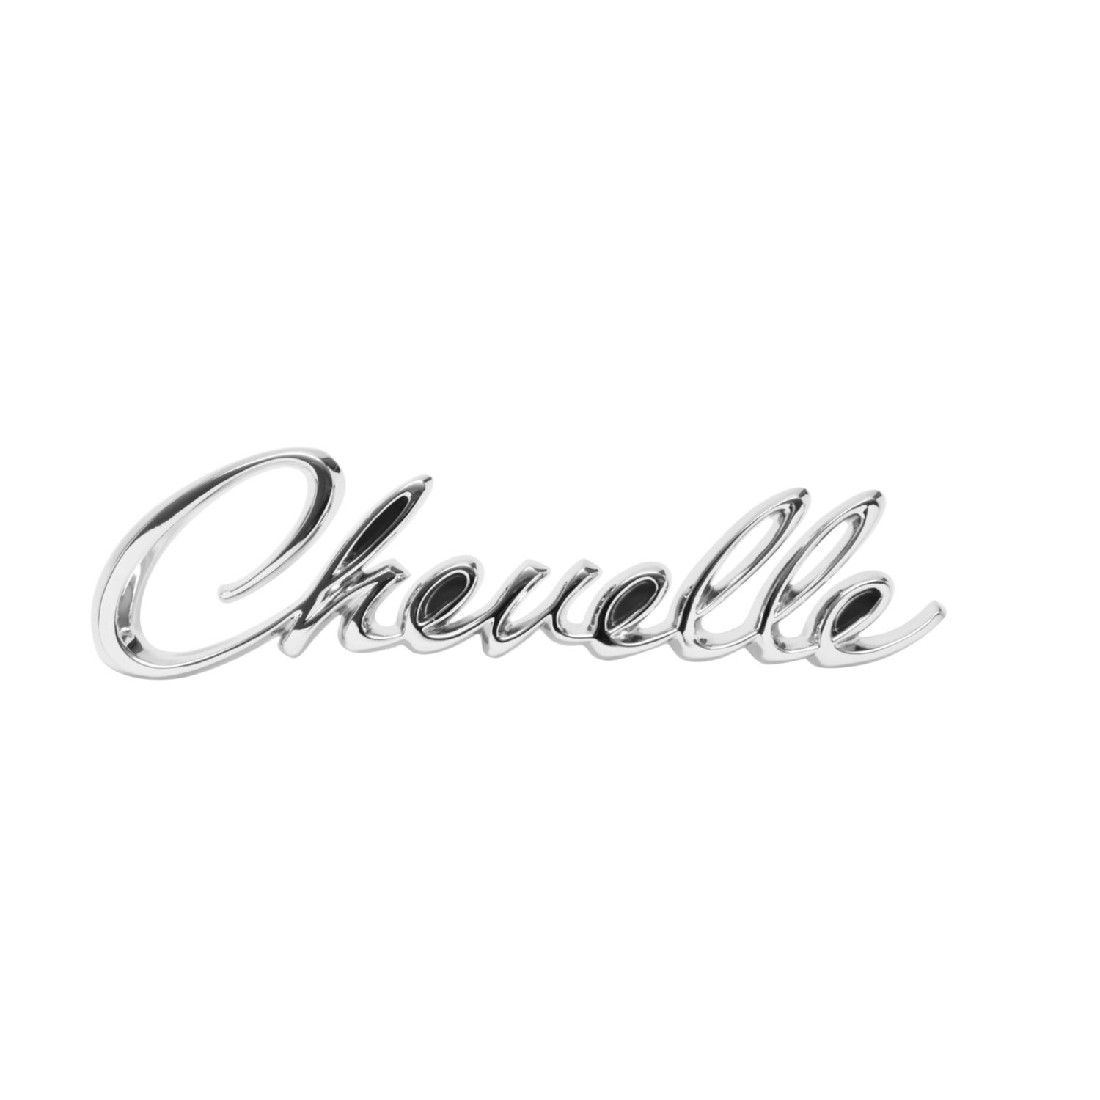 Chevelle Rear Trunk Emblem